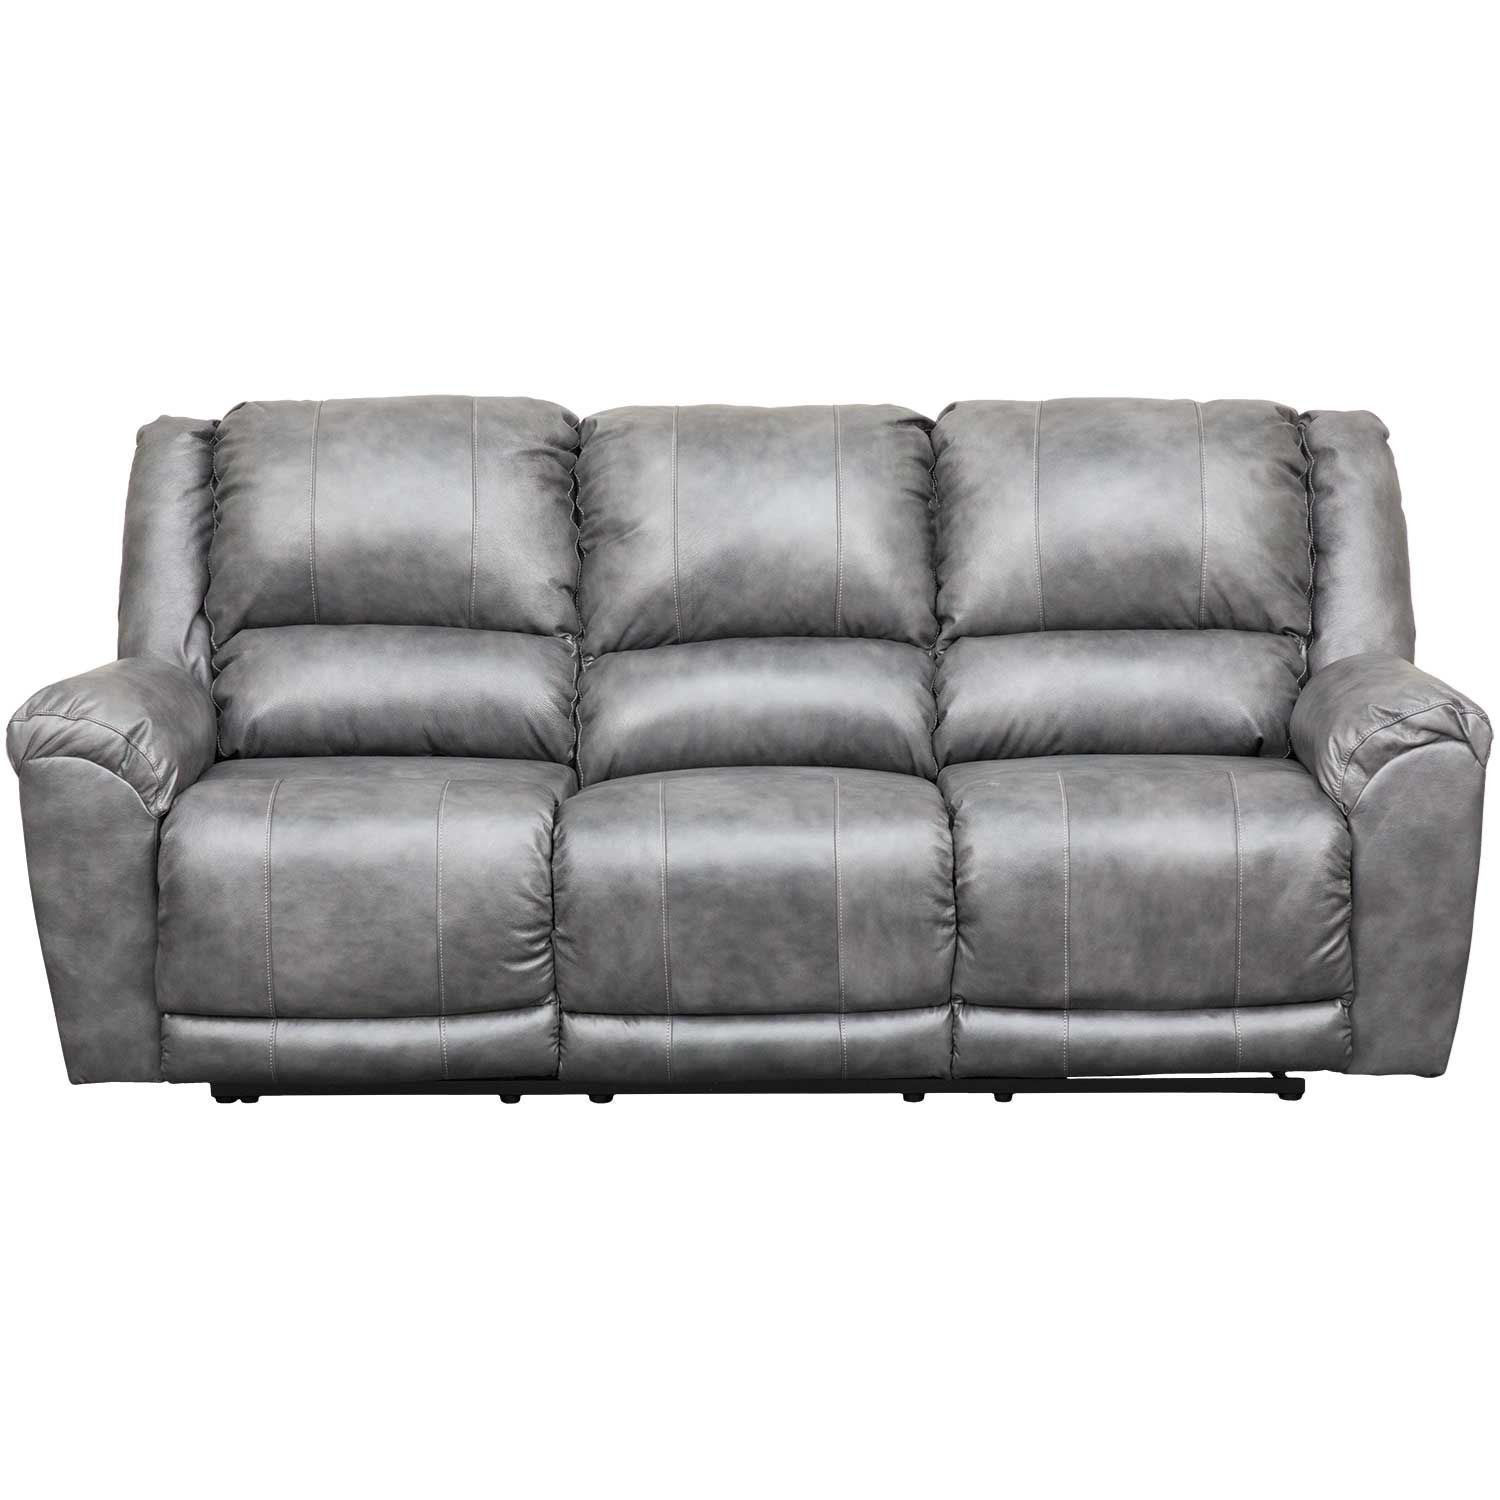 Awesome Picture Of Persiphone Charcoal Leather Reclining Sofa